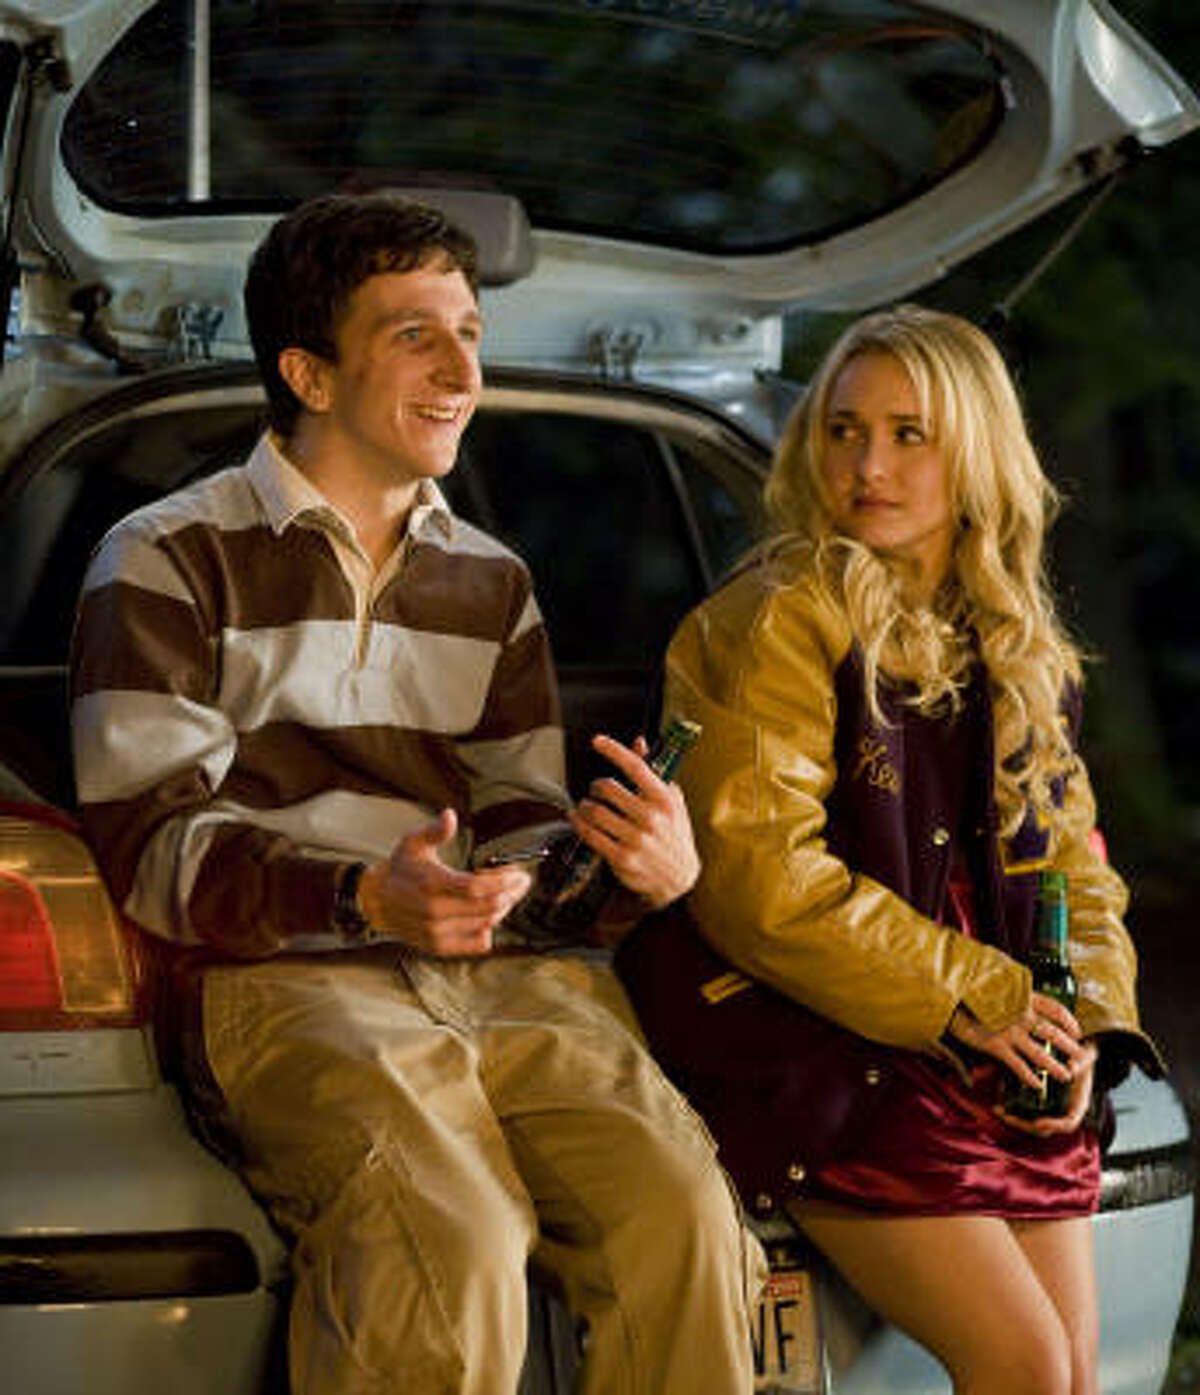 Denis Cooverman (Paul Rust) and Hayden Panettiere (Beth Cooper) make an unexpected connection during an eventful night.